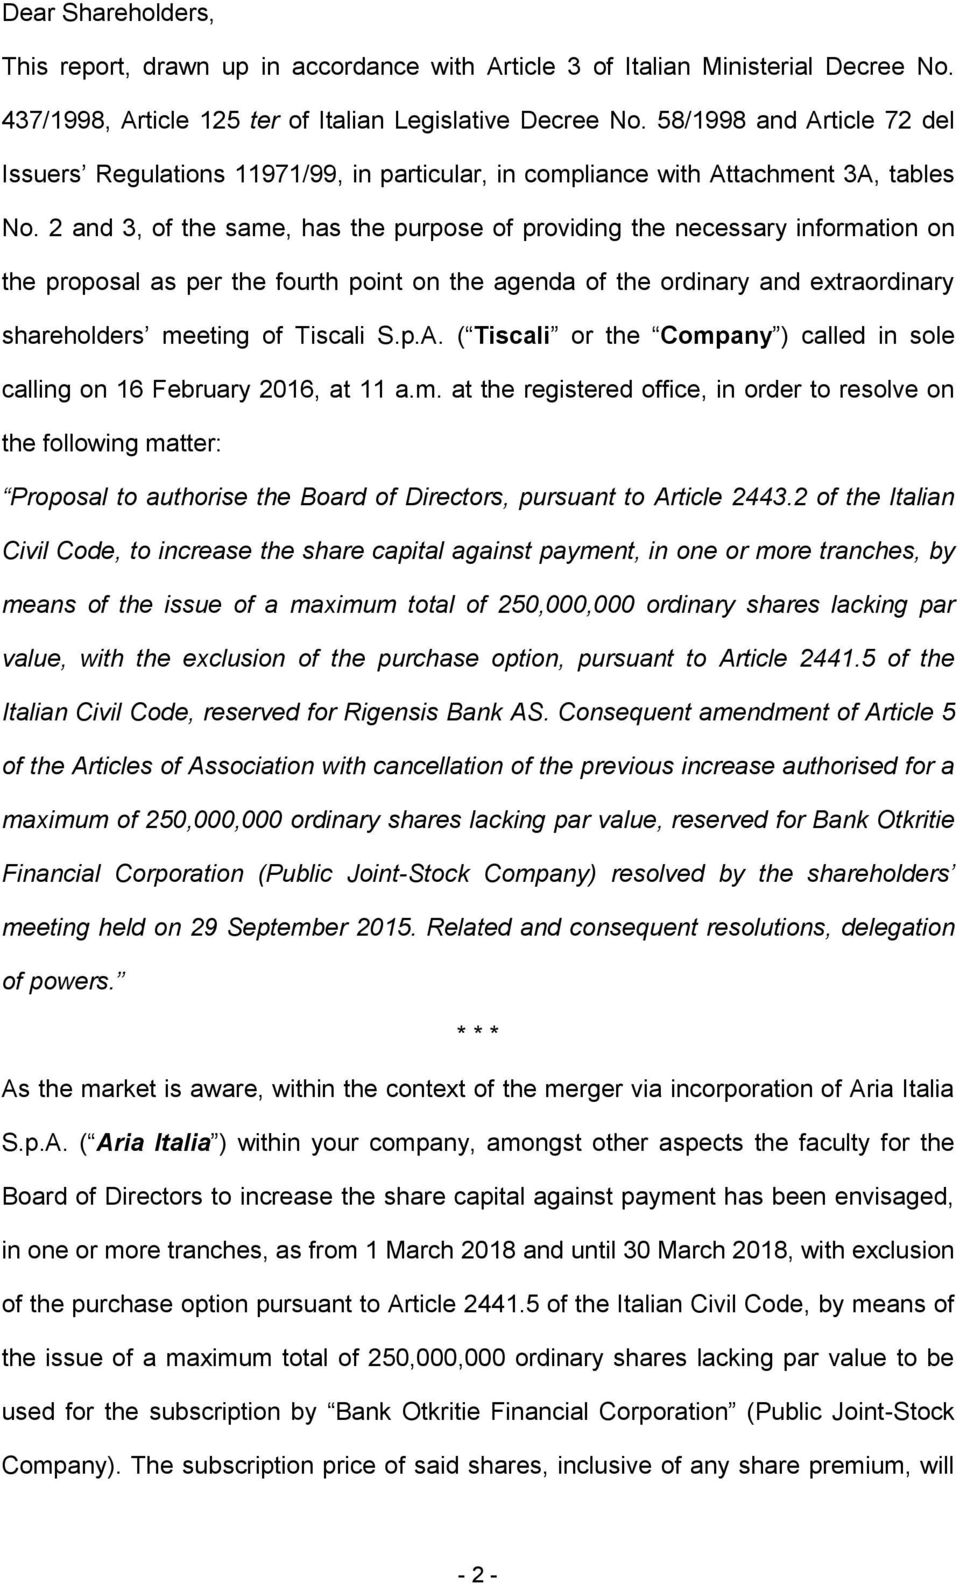 2 and 3, of the same, has the purpose of providing the necessary information on the proposal as per the fourth point on the agenda of the ordinary and extraordinary shareholders meeting of Tiscali S.